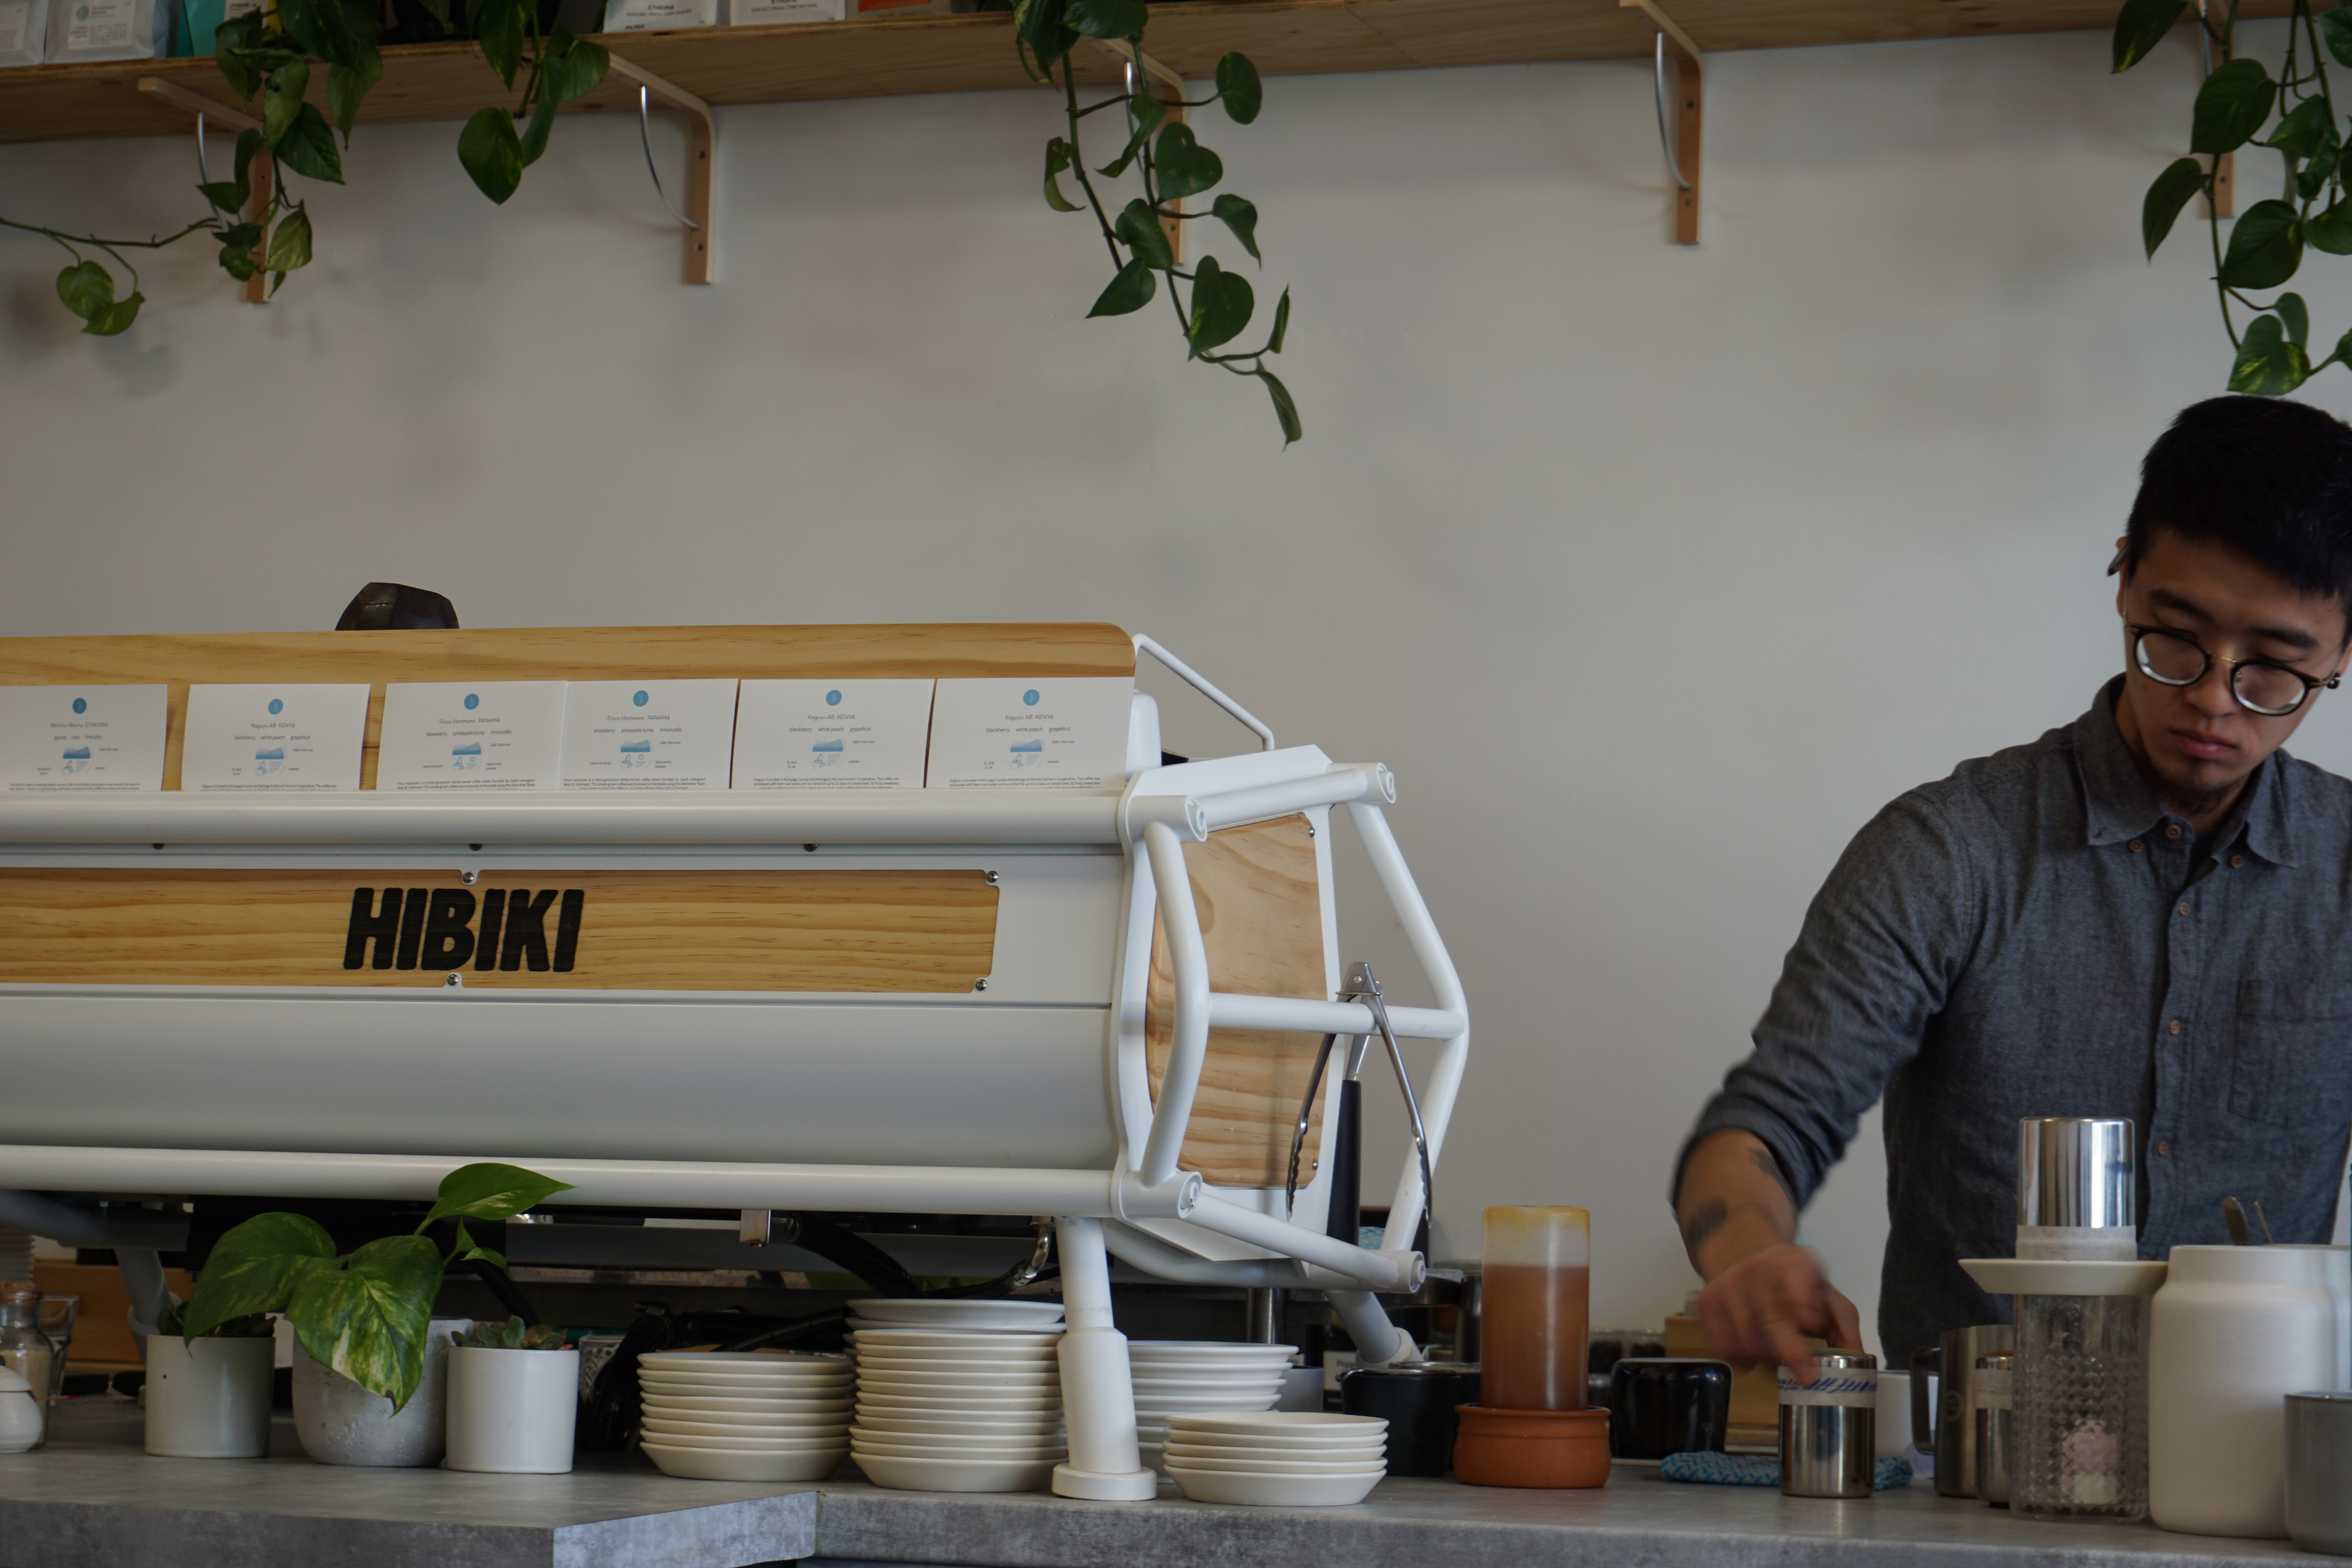 Funky, retro coffee machine in an ultra modern cafe, with a Japanese barista making coffee behind the concrete bar, in a Japanese cafe in Melbourne